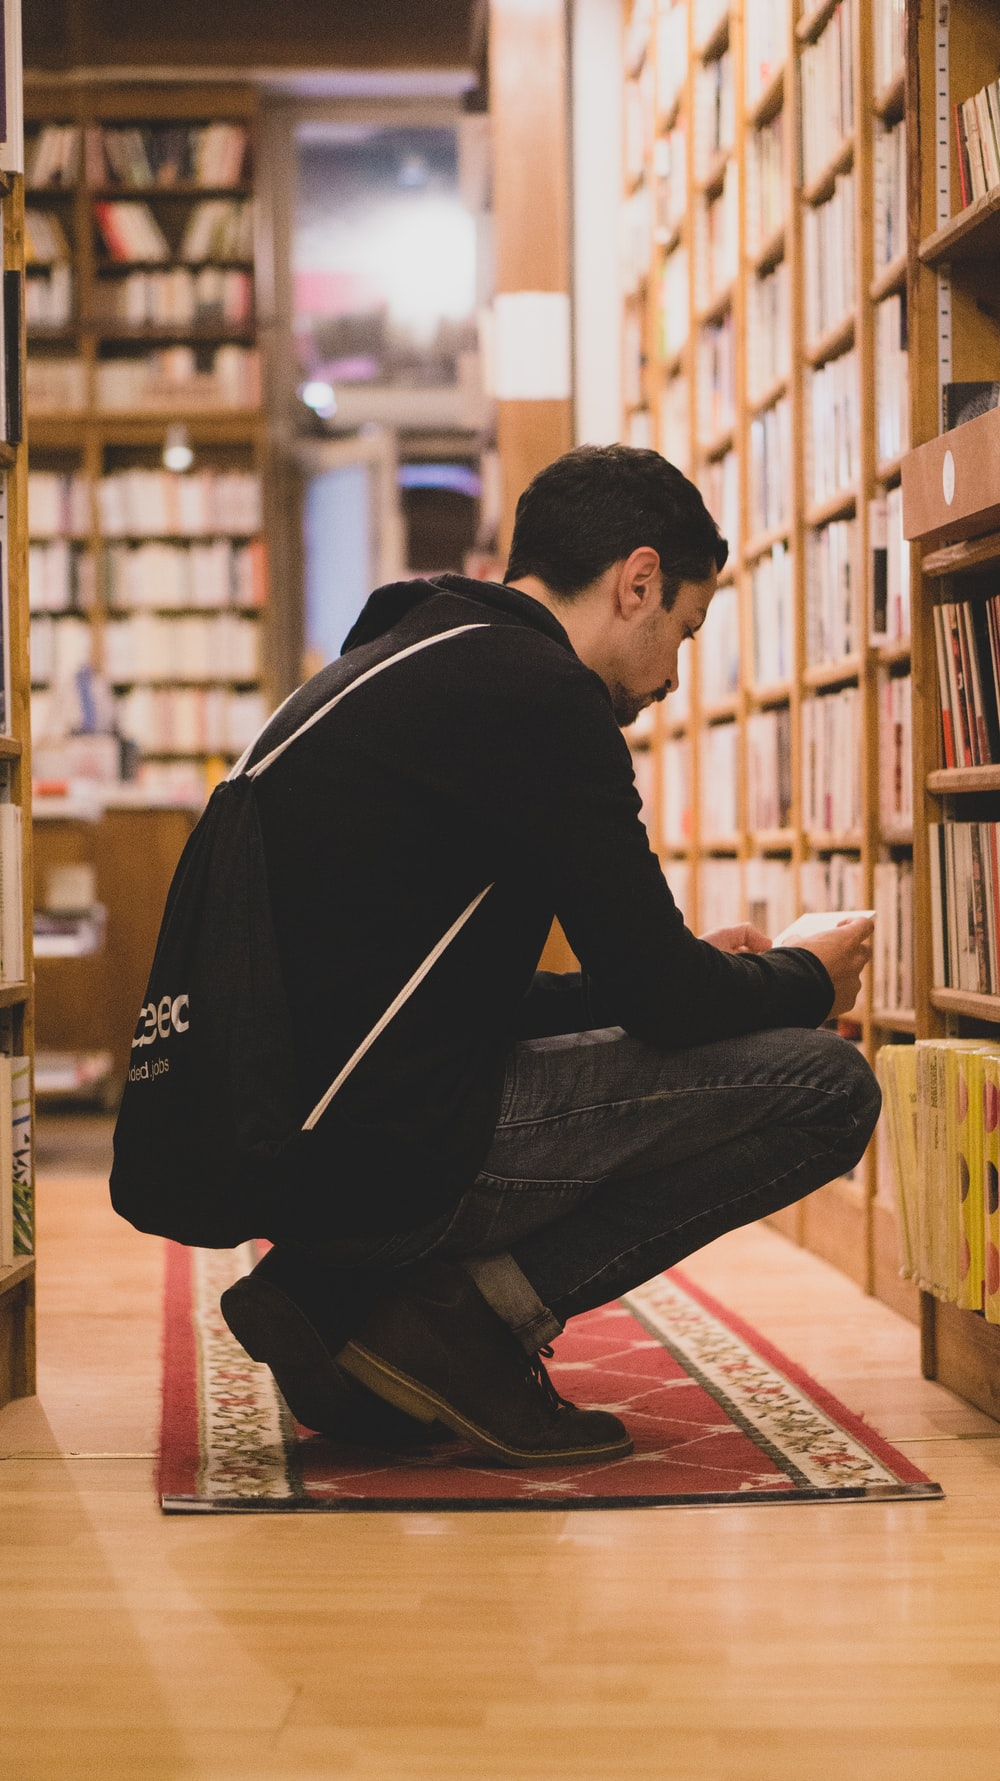 man squatting in front book shelves